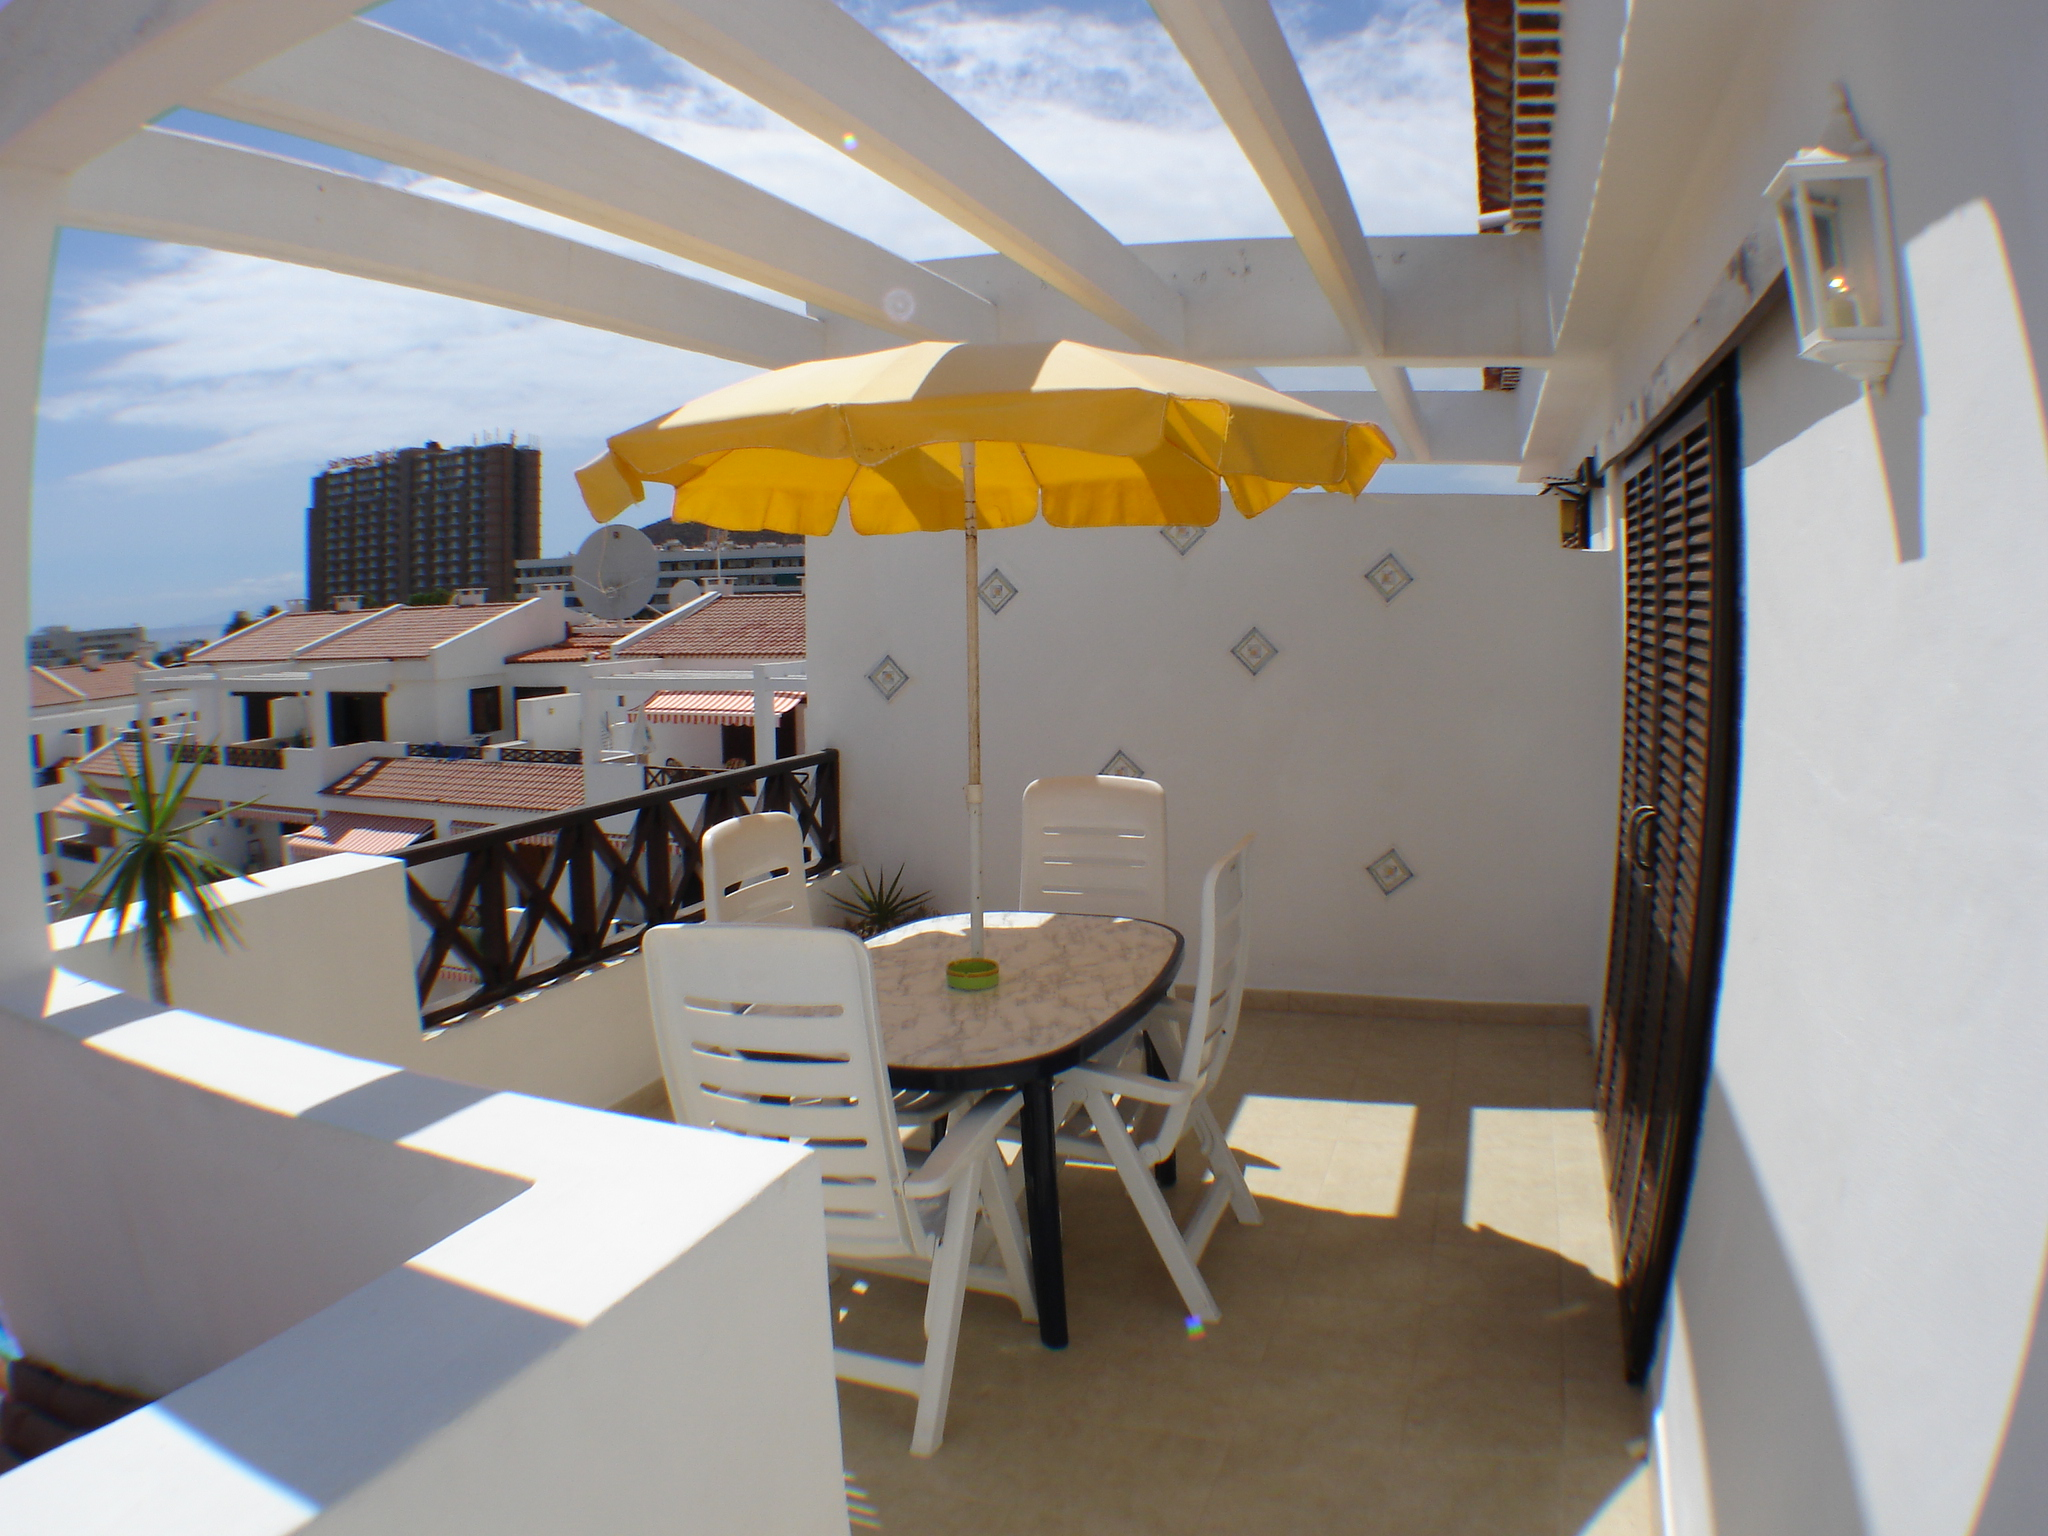 2 Bedroom Holiday Apartment To Rent In Victoria Court 1 Los Cristianos Ref 411 Smarthols Los Cristianos Holiday Apartment Rentals Tenerife